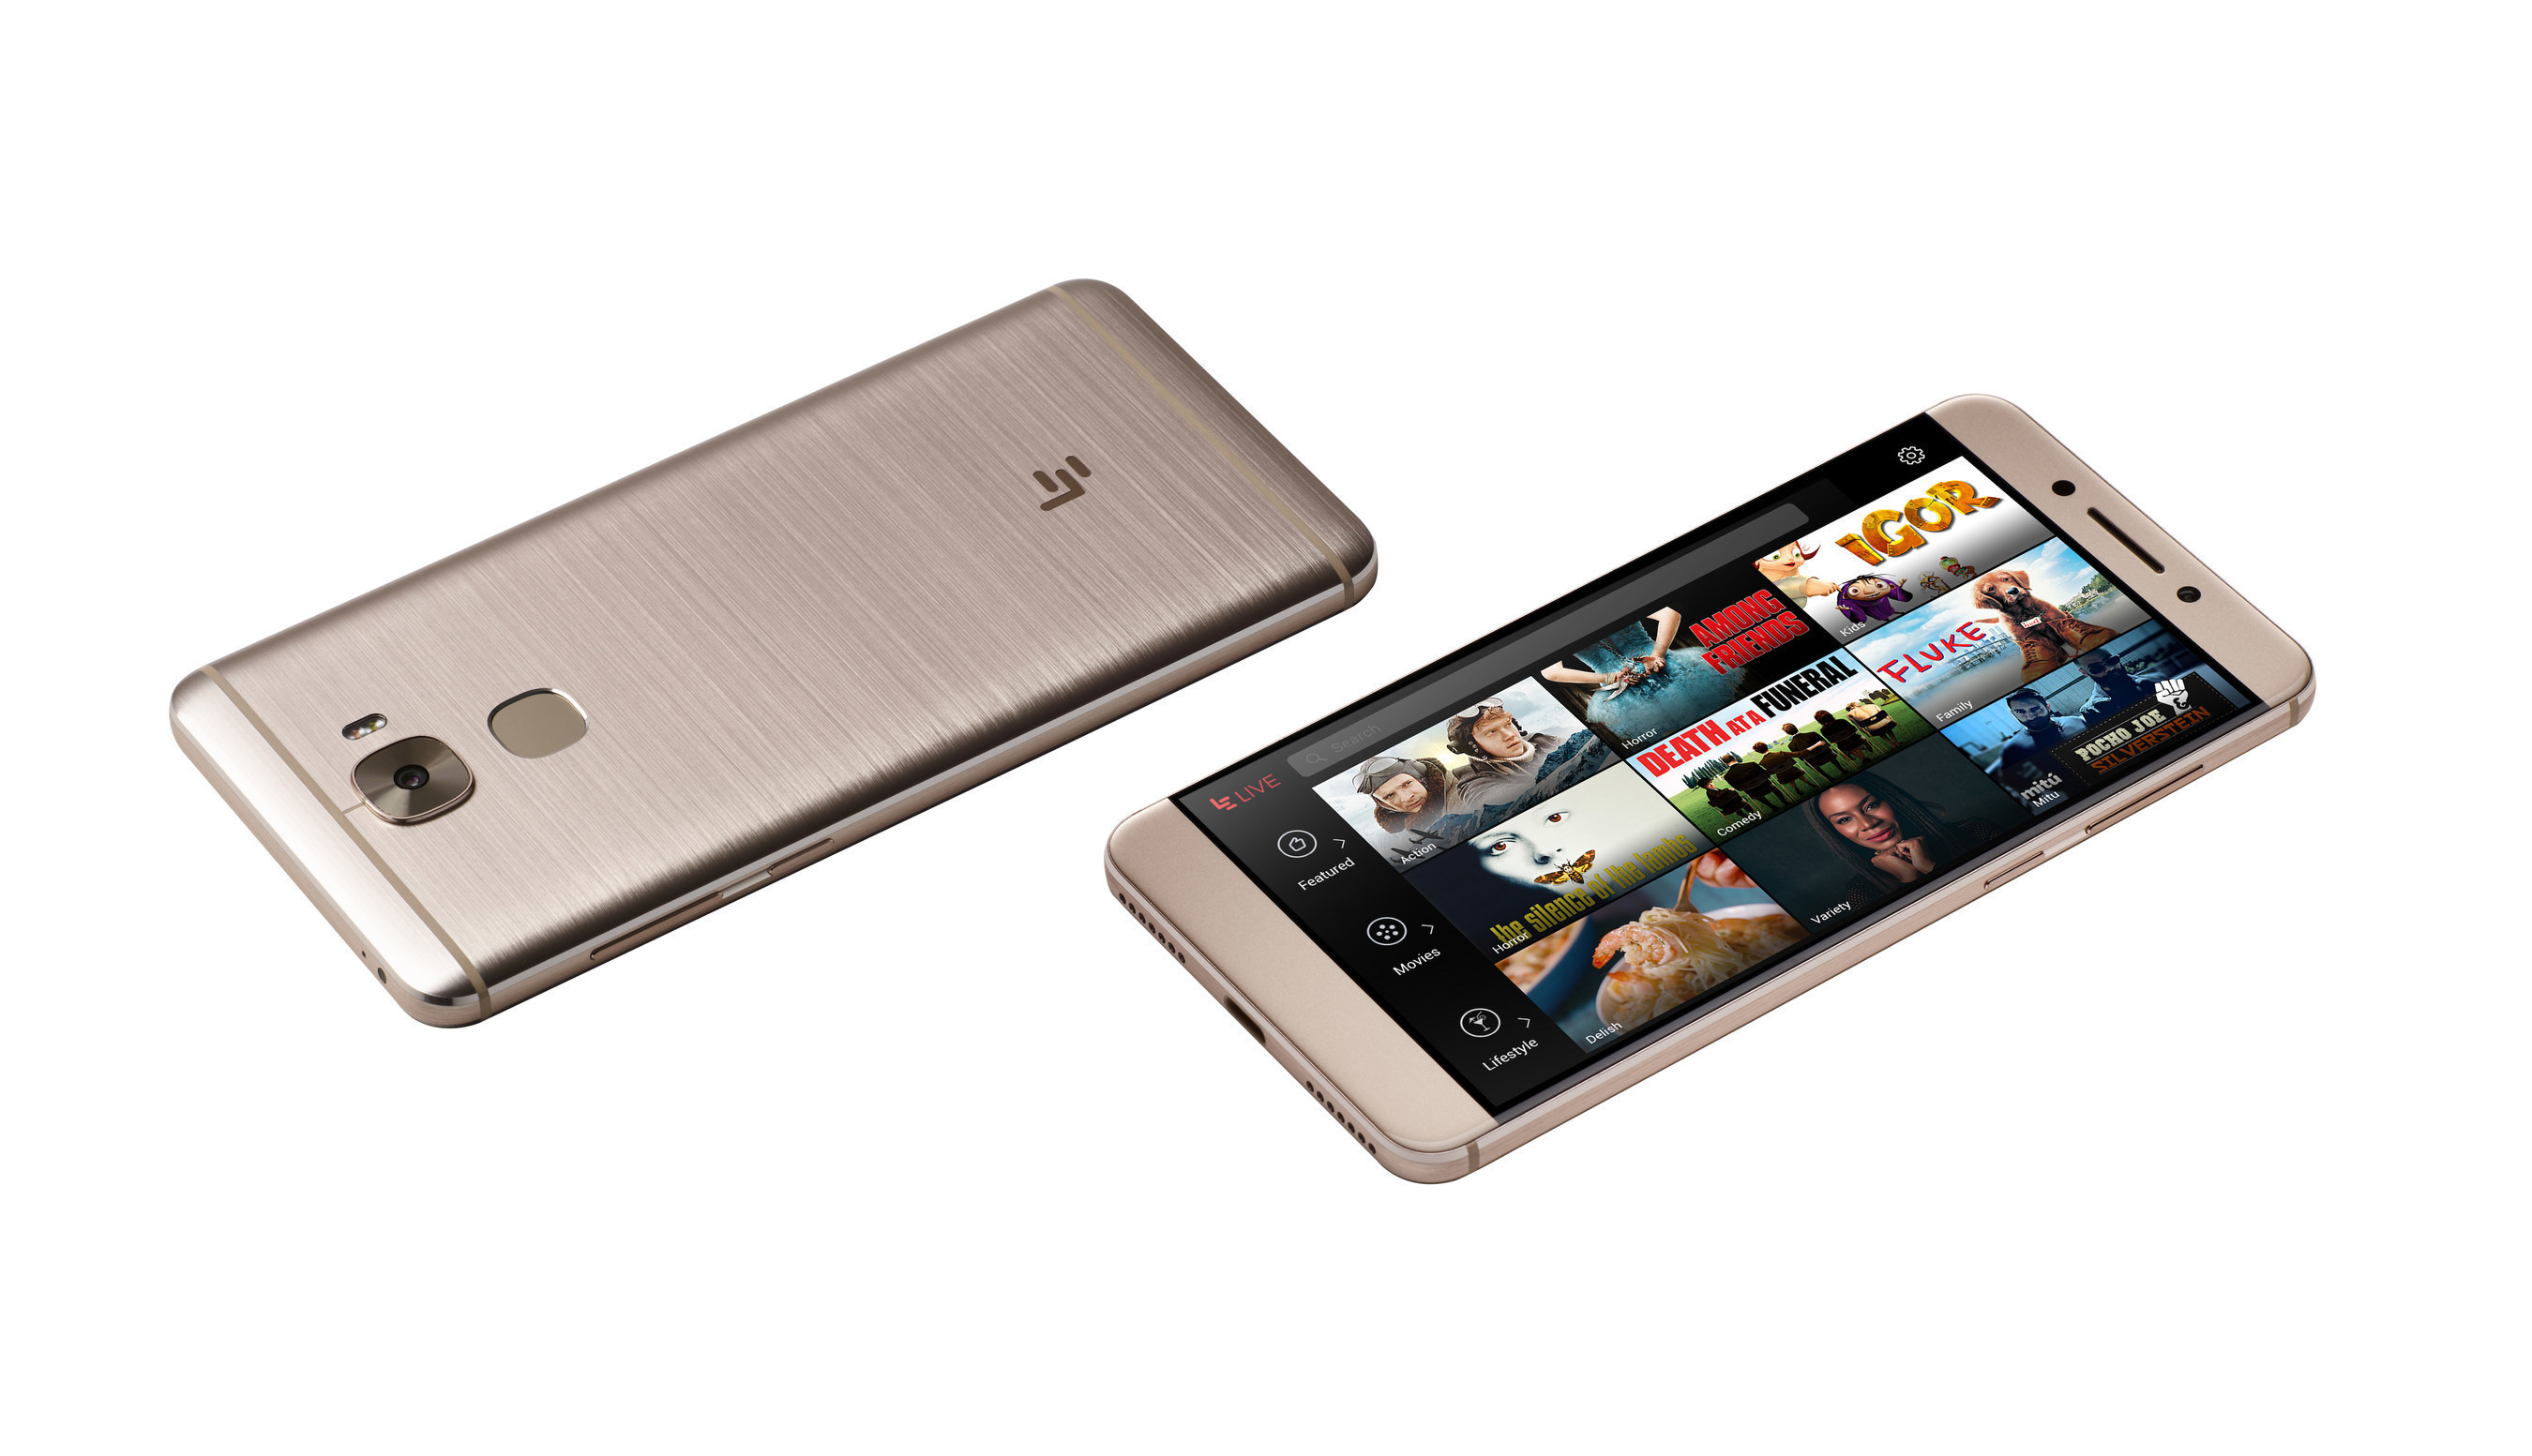 LeEco Begins Selling Its Premium Ecophones and Ecotvs at Disruptive Prices Today in the U.S. at LeMall.com